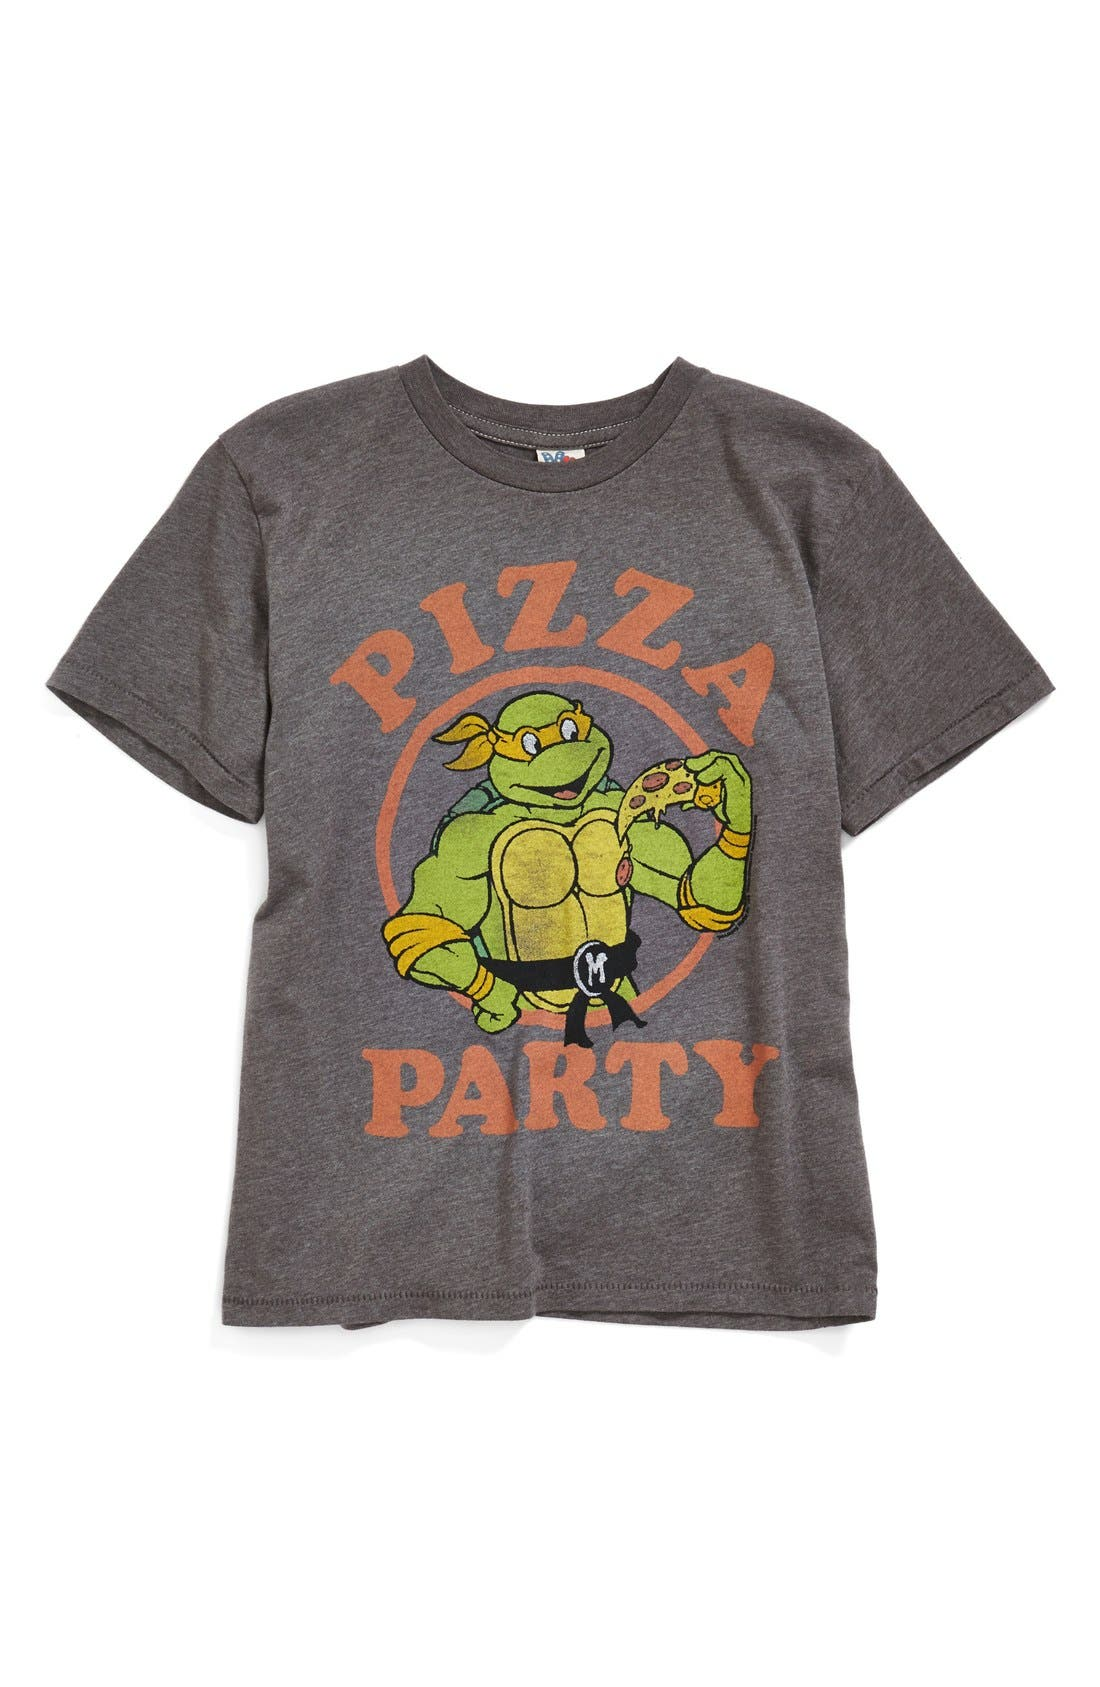 Main Image - Junk Food 'Teenage Mutant Ninja Turtles - Pizza Party' Graphic T-Shirt (Toddler Boys & Little Boys)